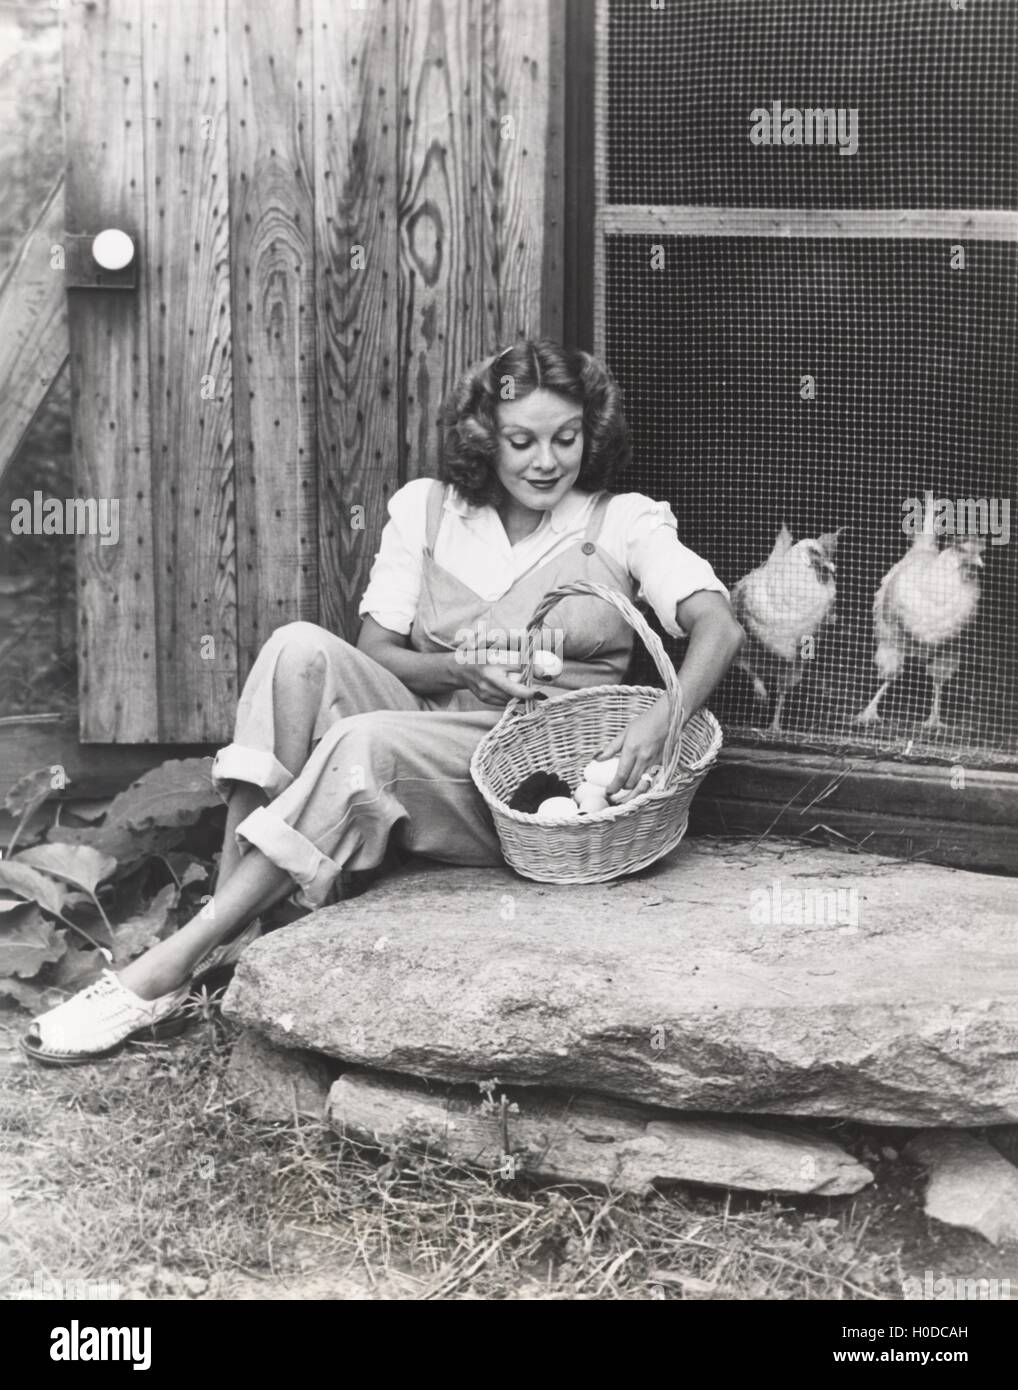 Woman collecting eggs from chickens - Stock Image